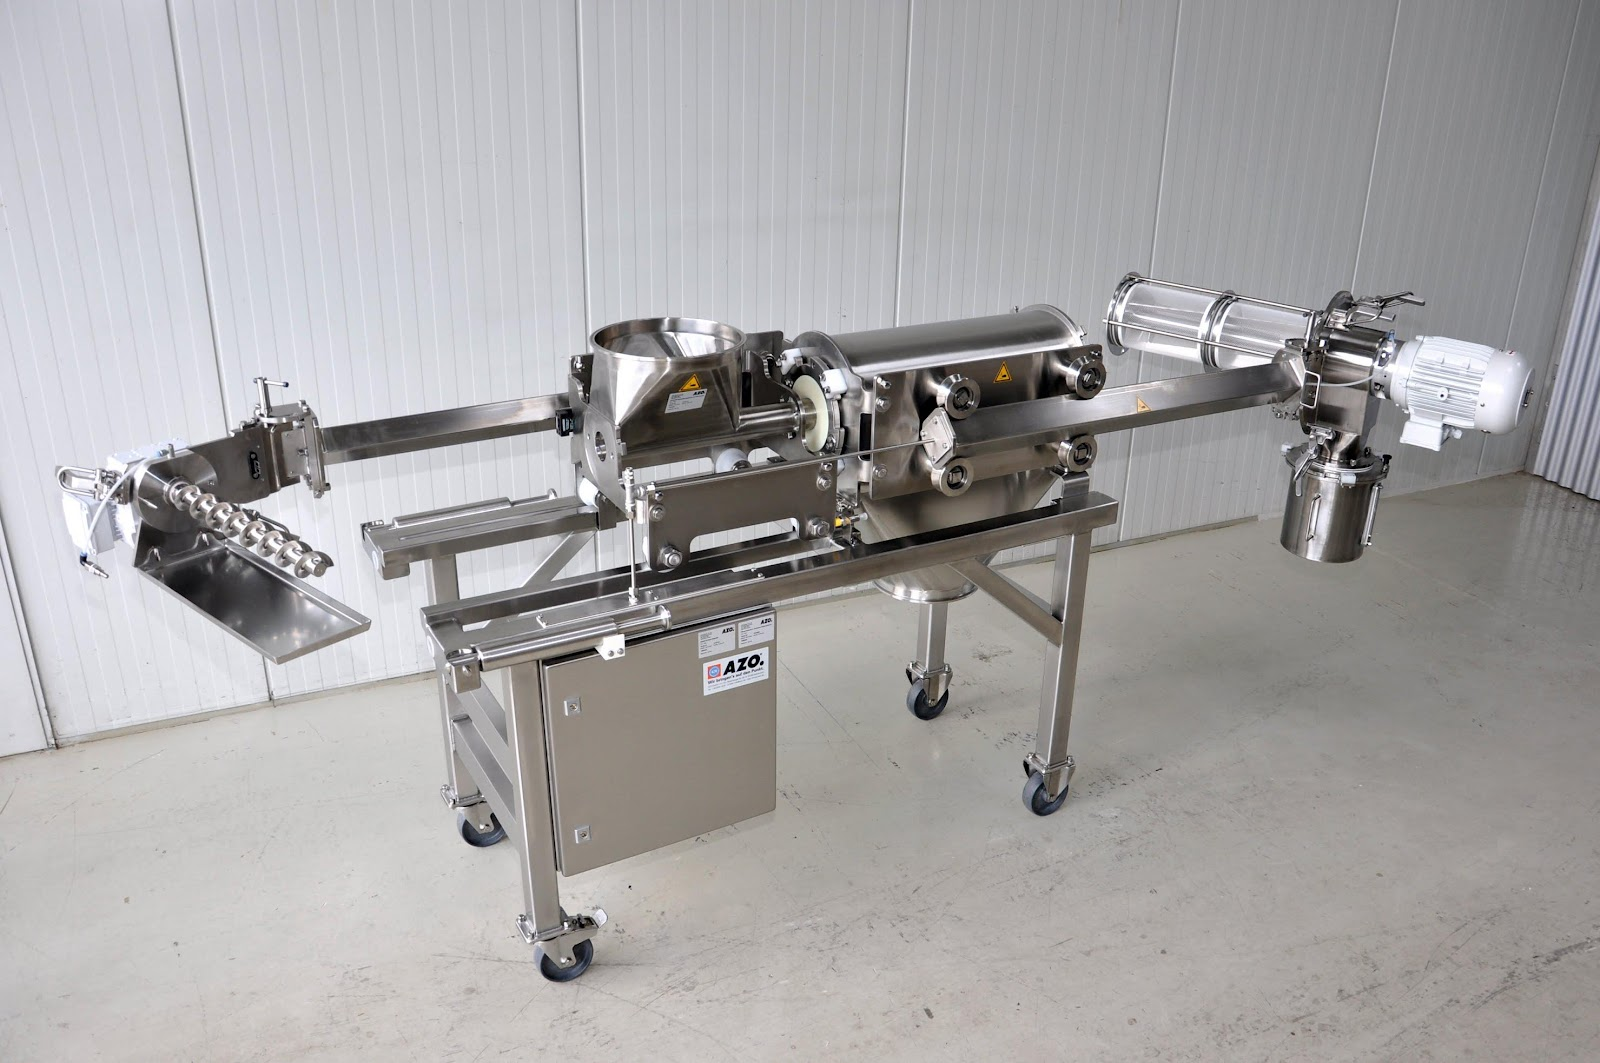 DA screener equipped with easy-to-use quick clamps for easy access to the screen cage for cGMP compliance